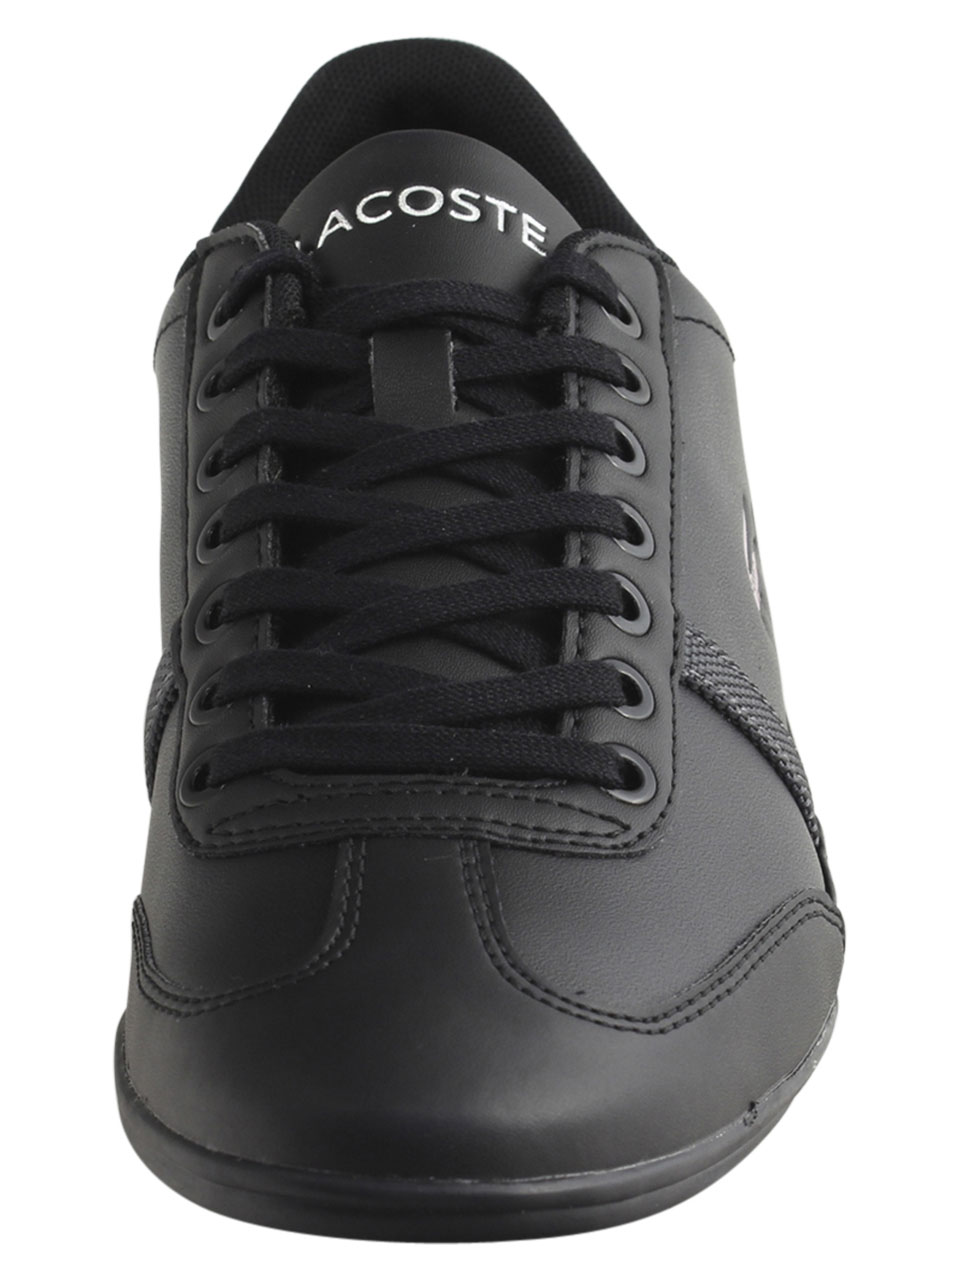 Lacoste-Men-039-s-Misano-Sport-118-Sneakers-Shoes thumbnail 9